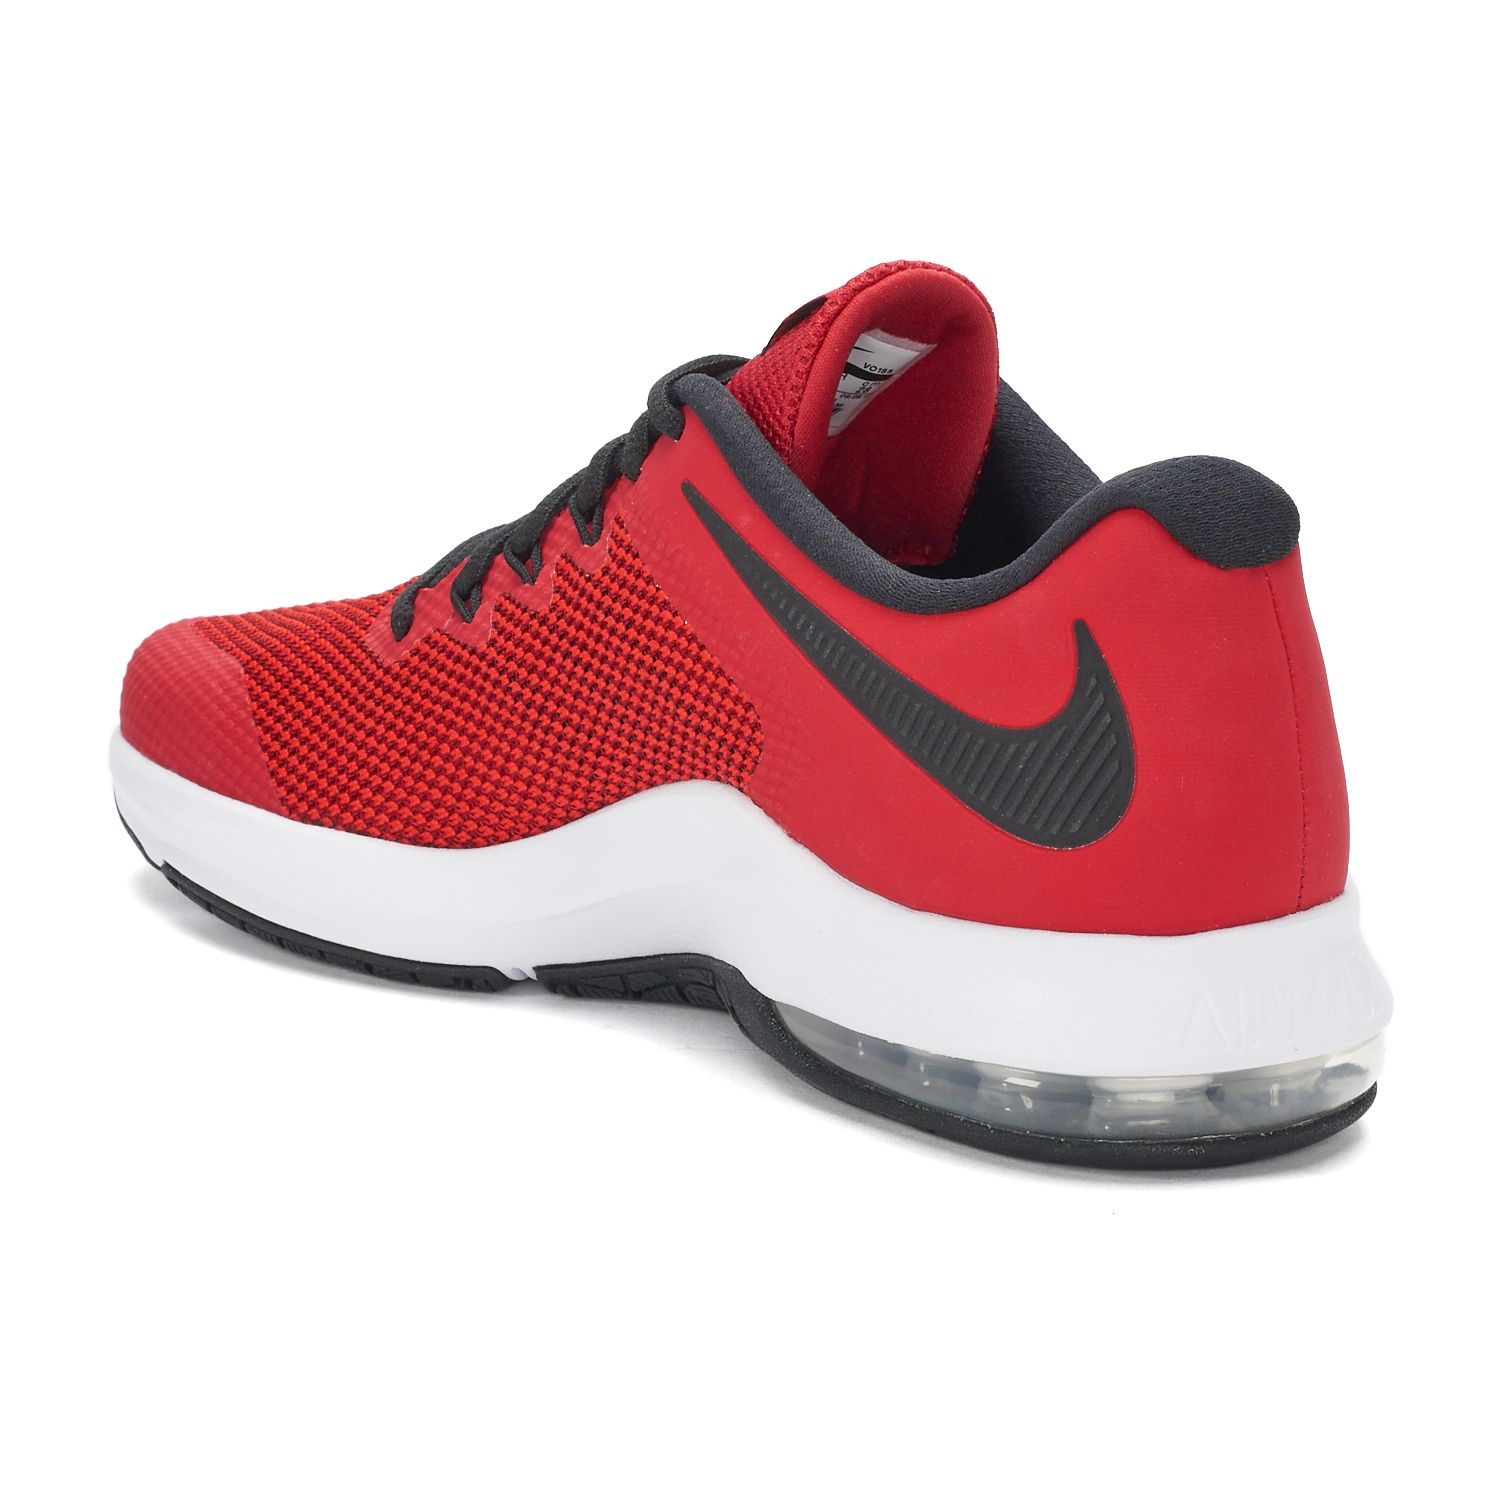 7a9864eda194 Nike Cross Training Shoes